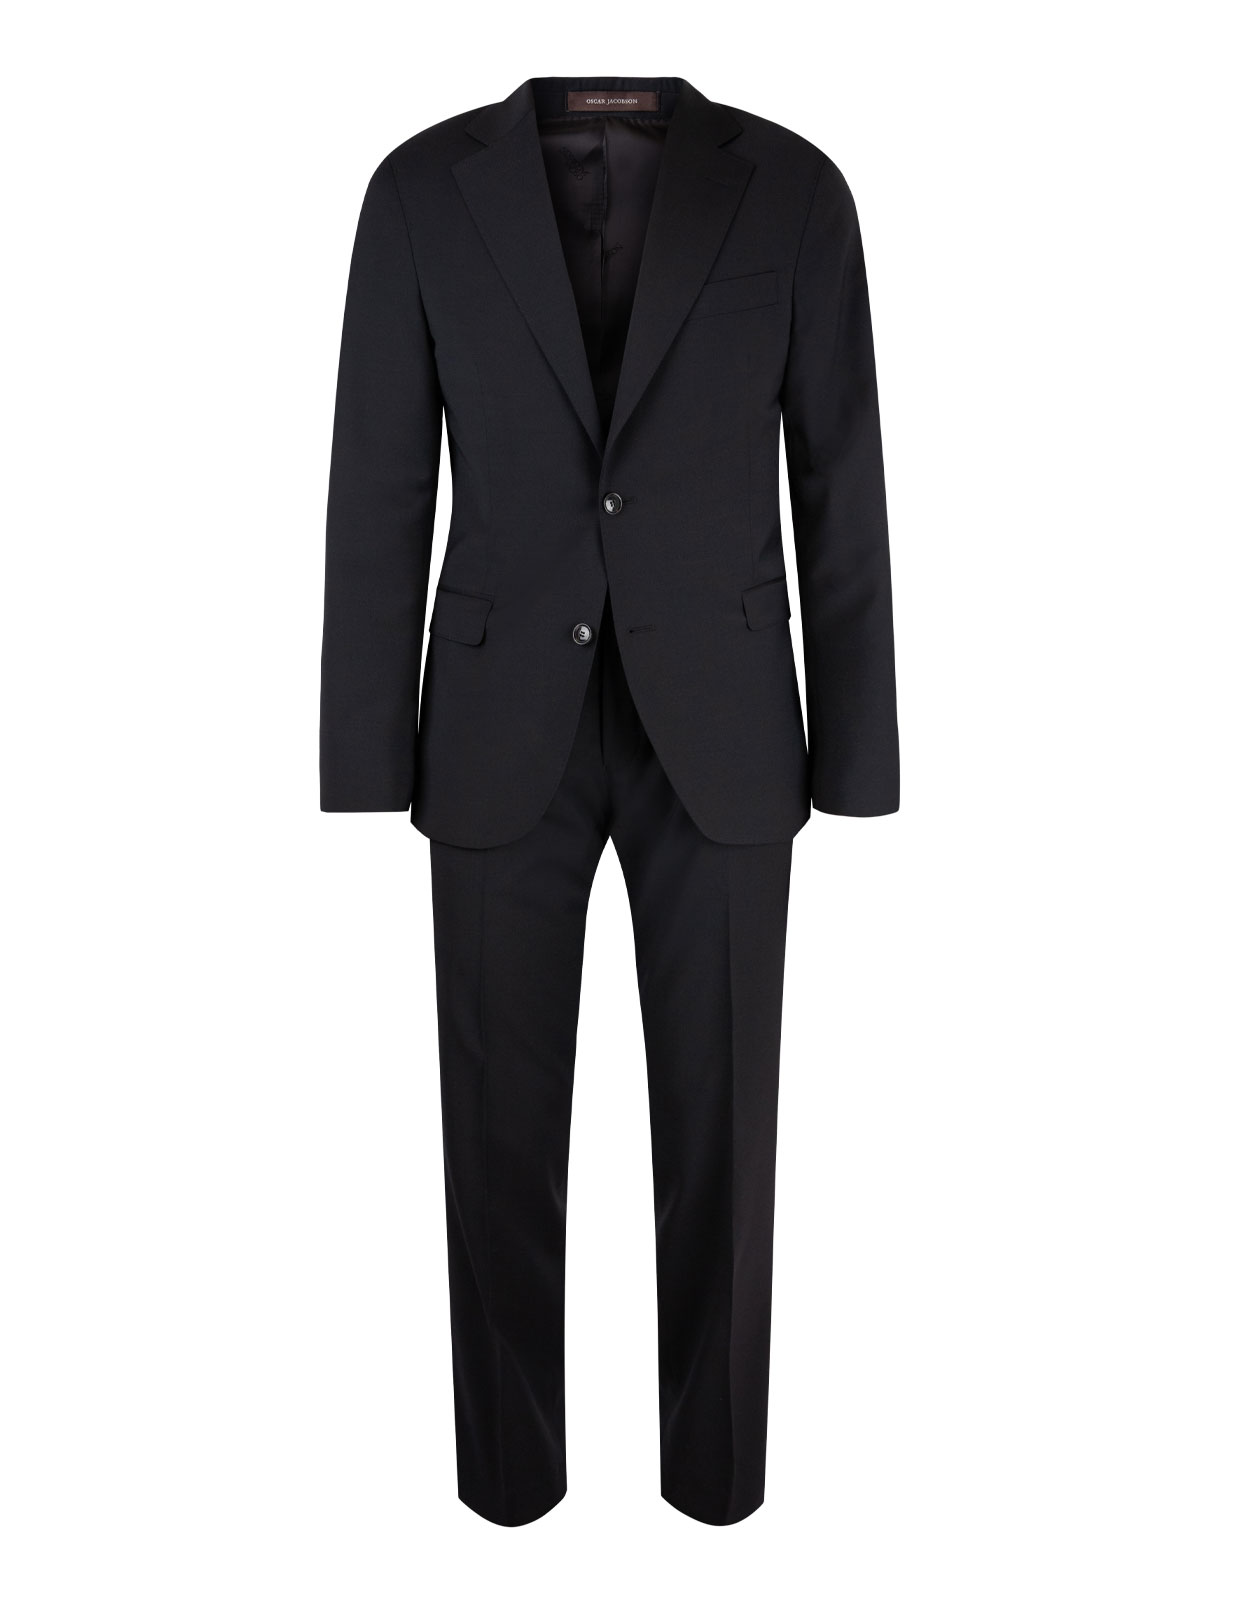 Ego Suit Slim Wool Stretch Black